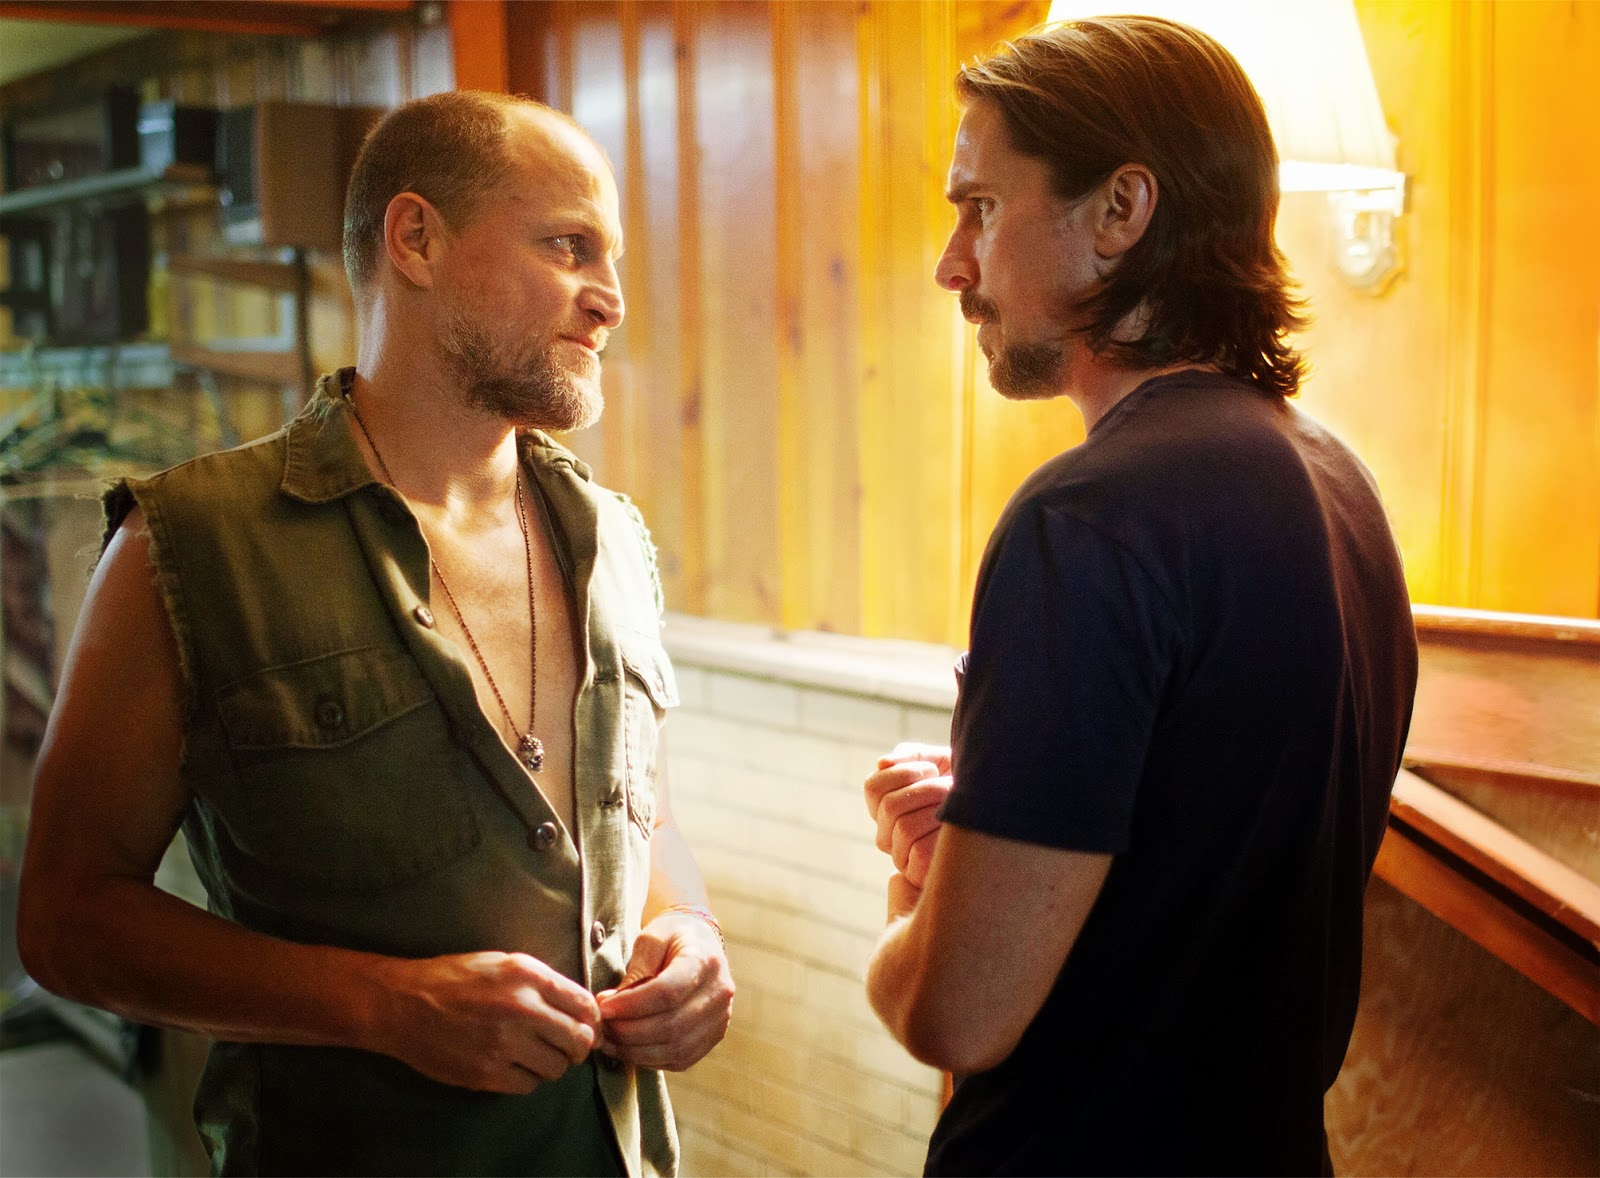 Woody Harrelson and Christian Bale in 2013's Out of the Furnace...a Woody role that did not get enough attention!